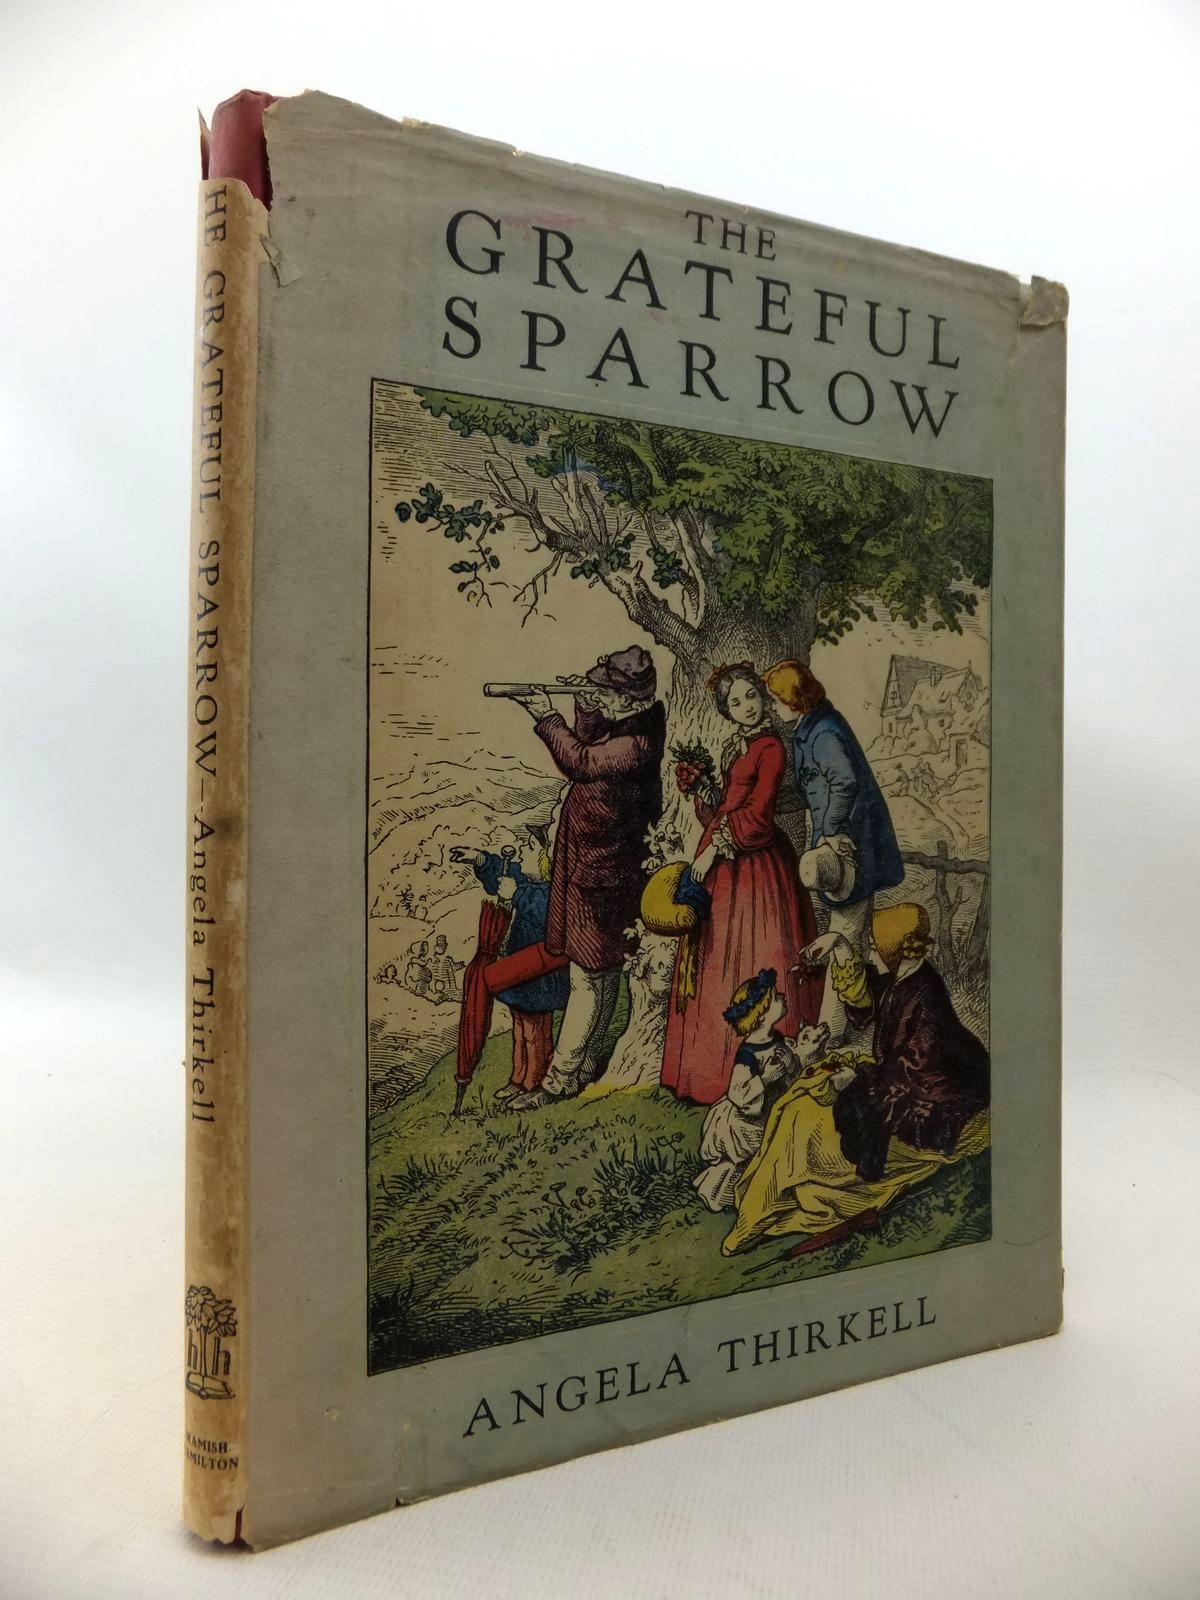 Photo of THE GRATEFUL SPARROW AND OTHER TALES written by Thirkell, Angela illustrated by Richter, Ludwig published by Hamish Hamilton (STOCK CODE: 1813881)  for sale by Stella & Rose's Books